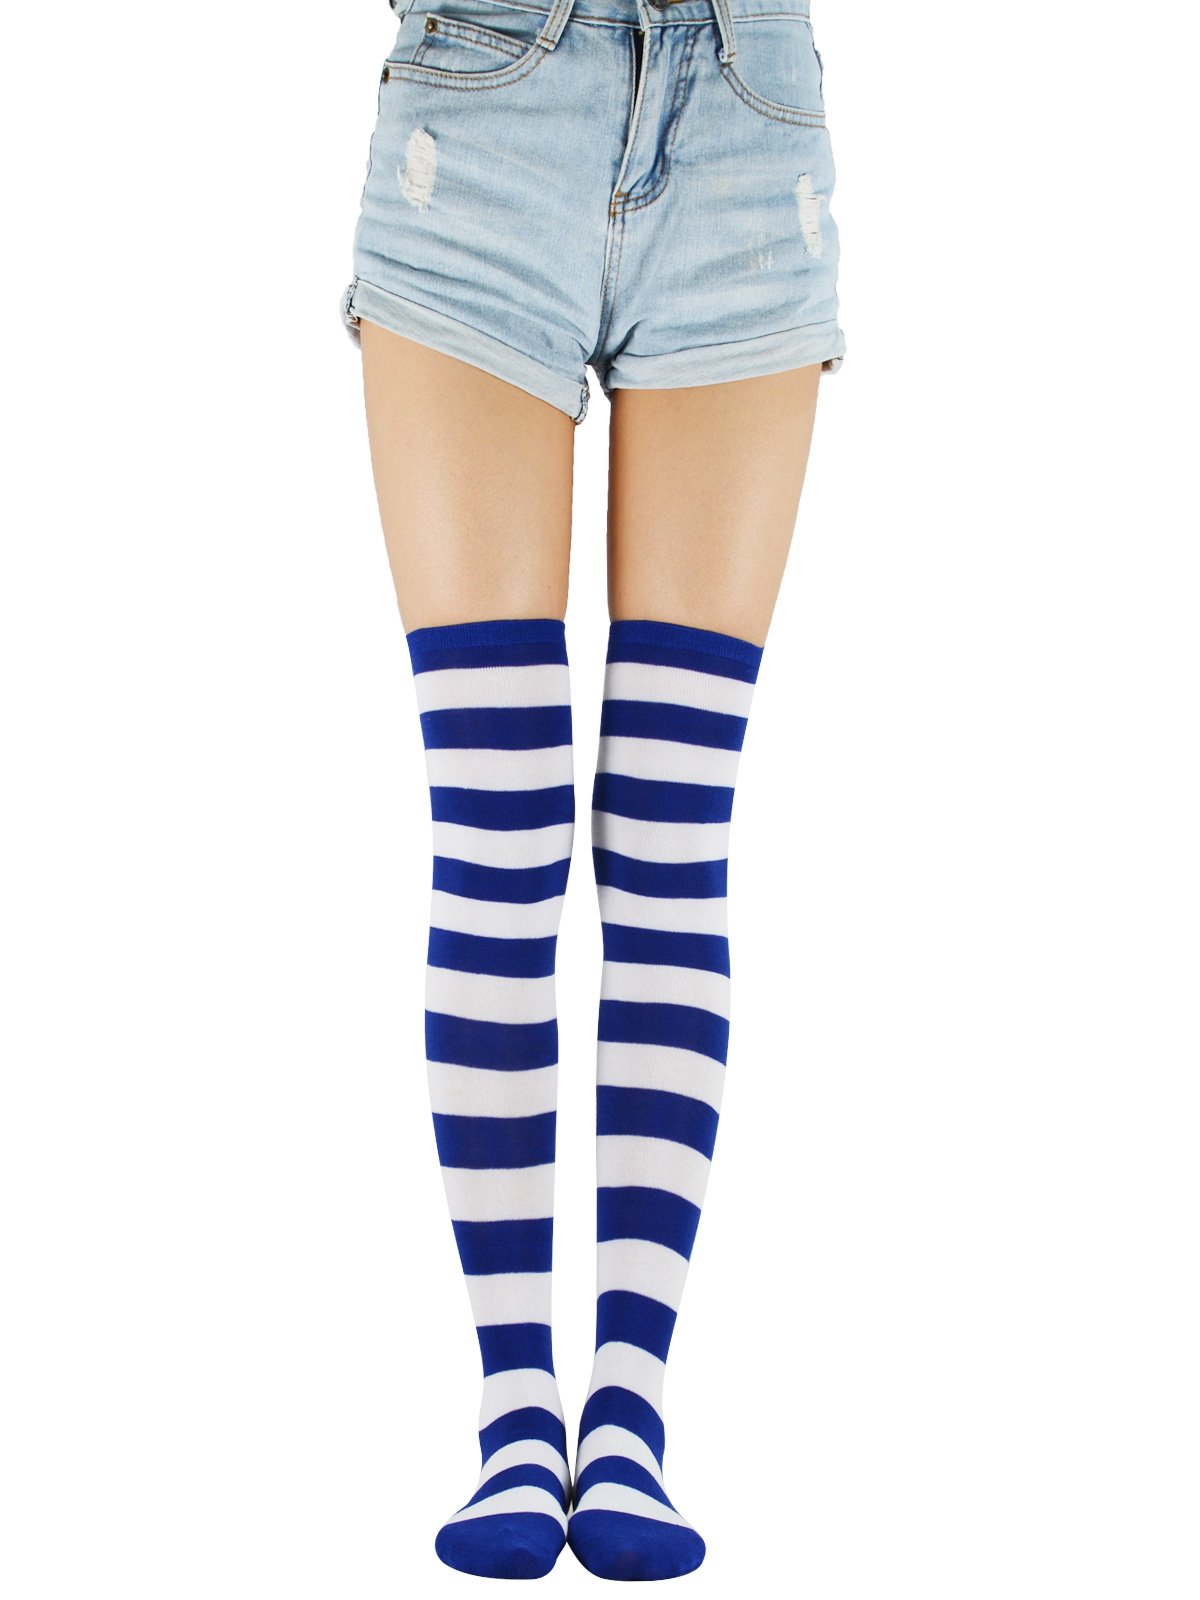 d6265dbd0bd Galleon - Over Knee Long Tube Socks Casual Striped Thigh High Tights  Athletic Stockings Stretchy One Pair Skirt Sock For Women Girls Navy White  Wide Stripe